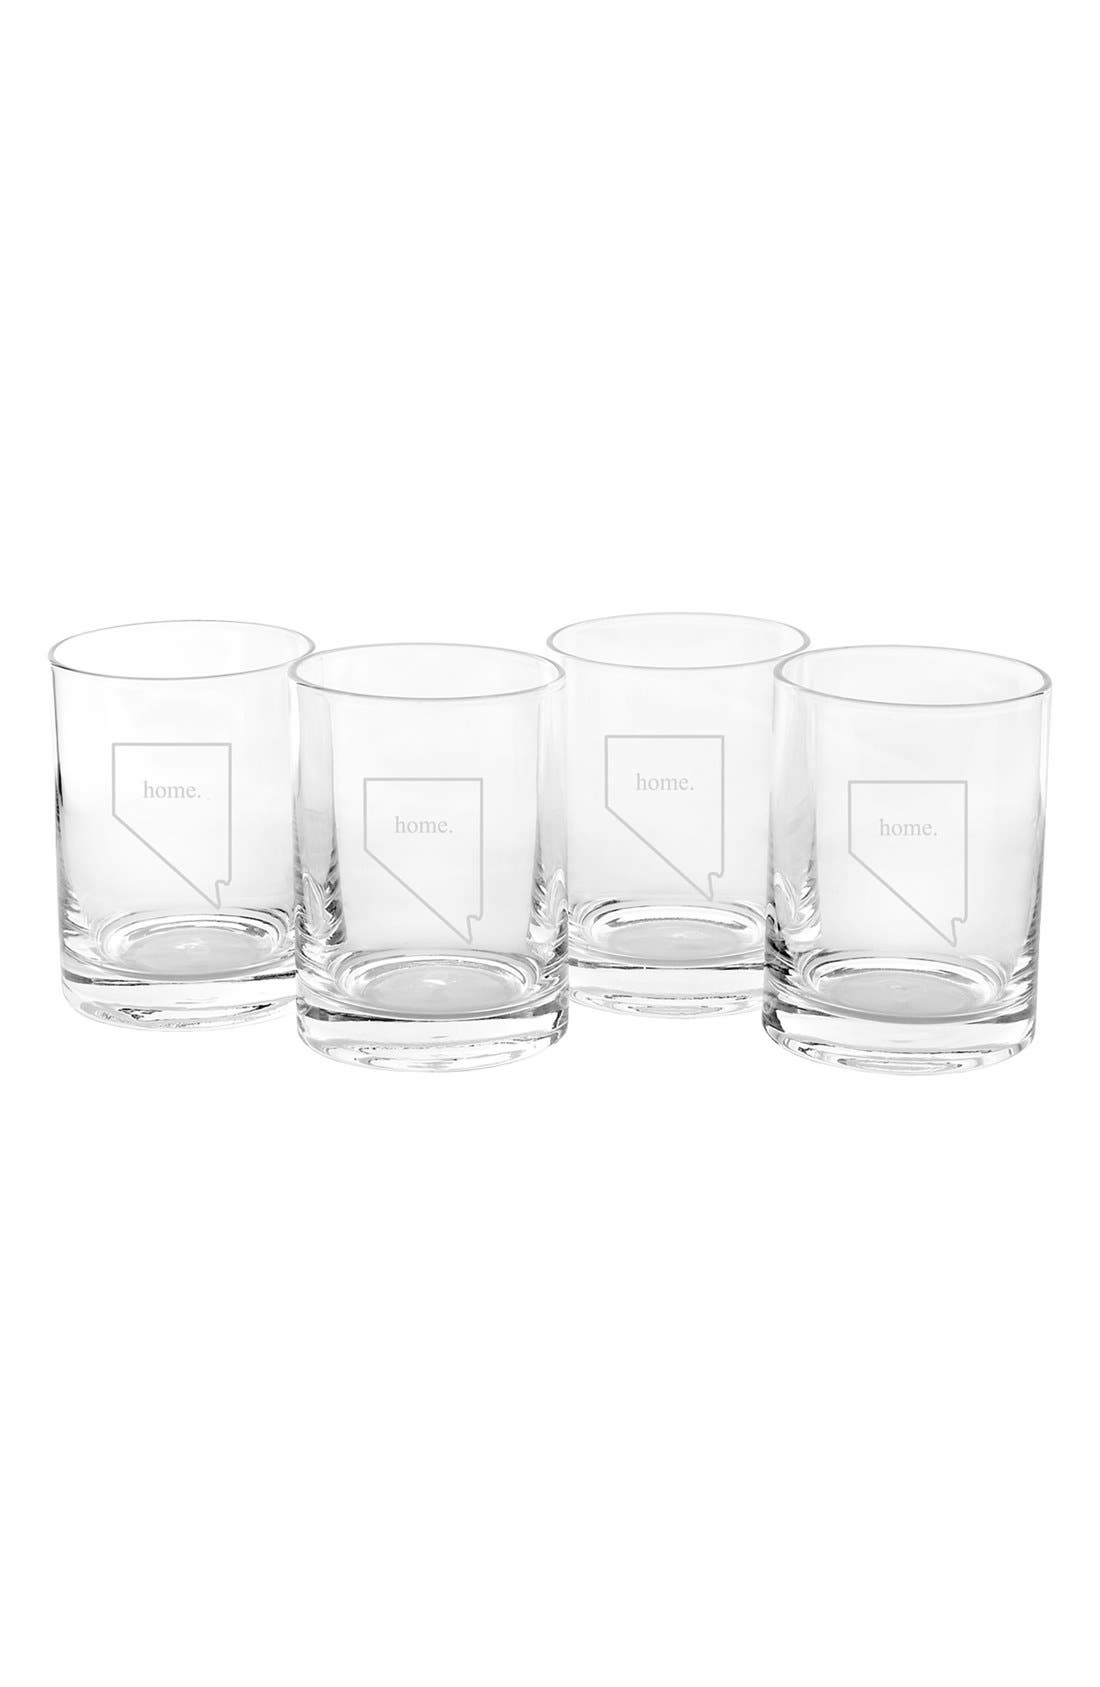 'Home State' Glasses,                         Main,                         color, Nevada